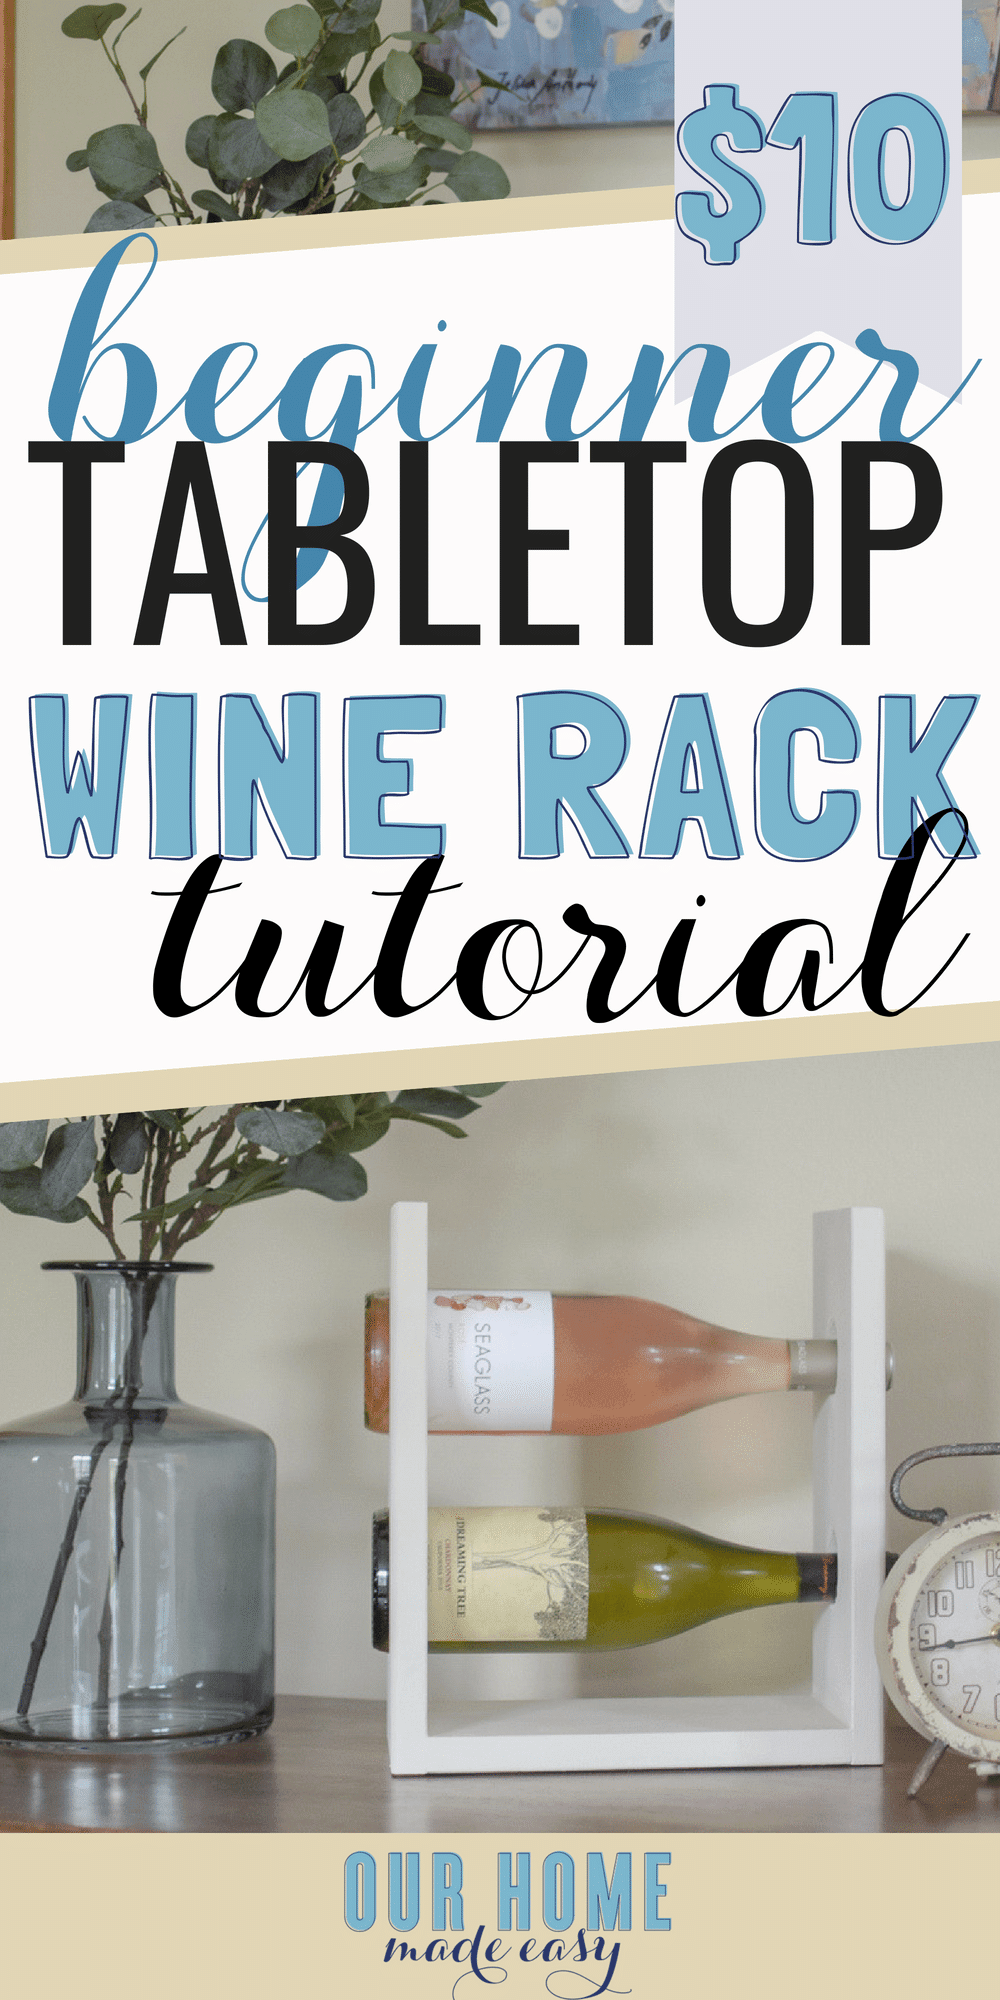 This simple DIY wine rack projects costs less than $10 and is a perfect beginners woodworking project